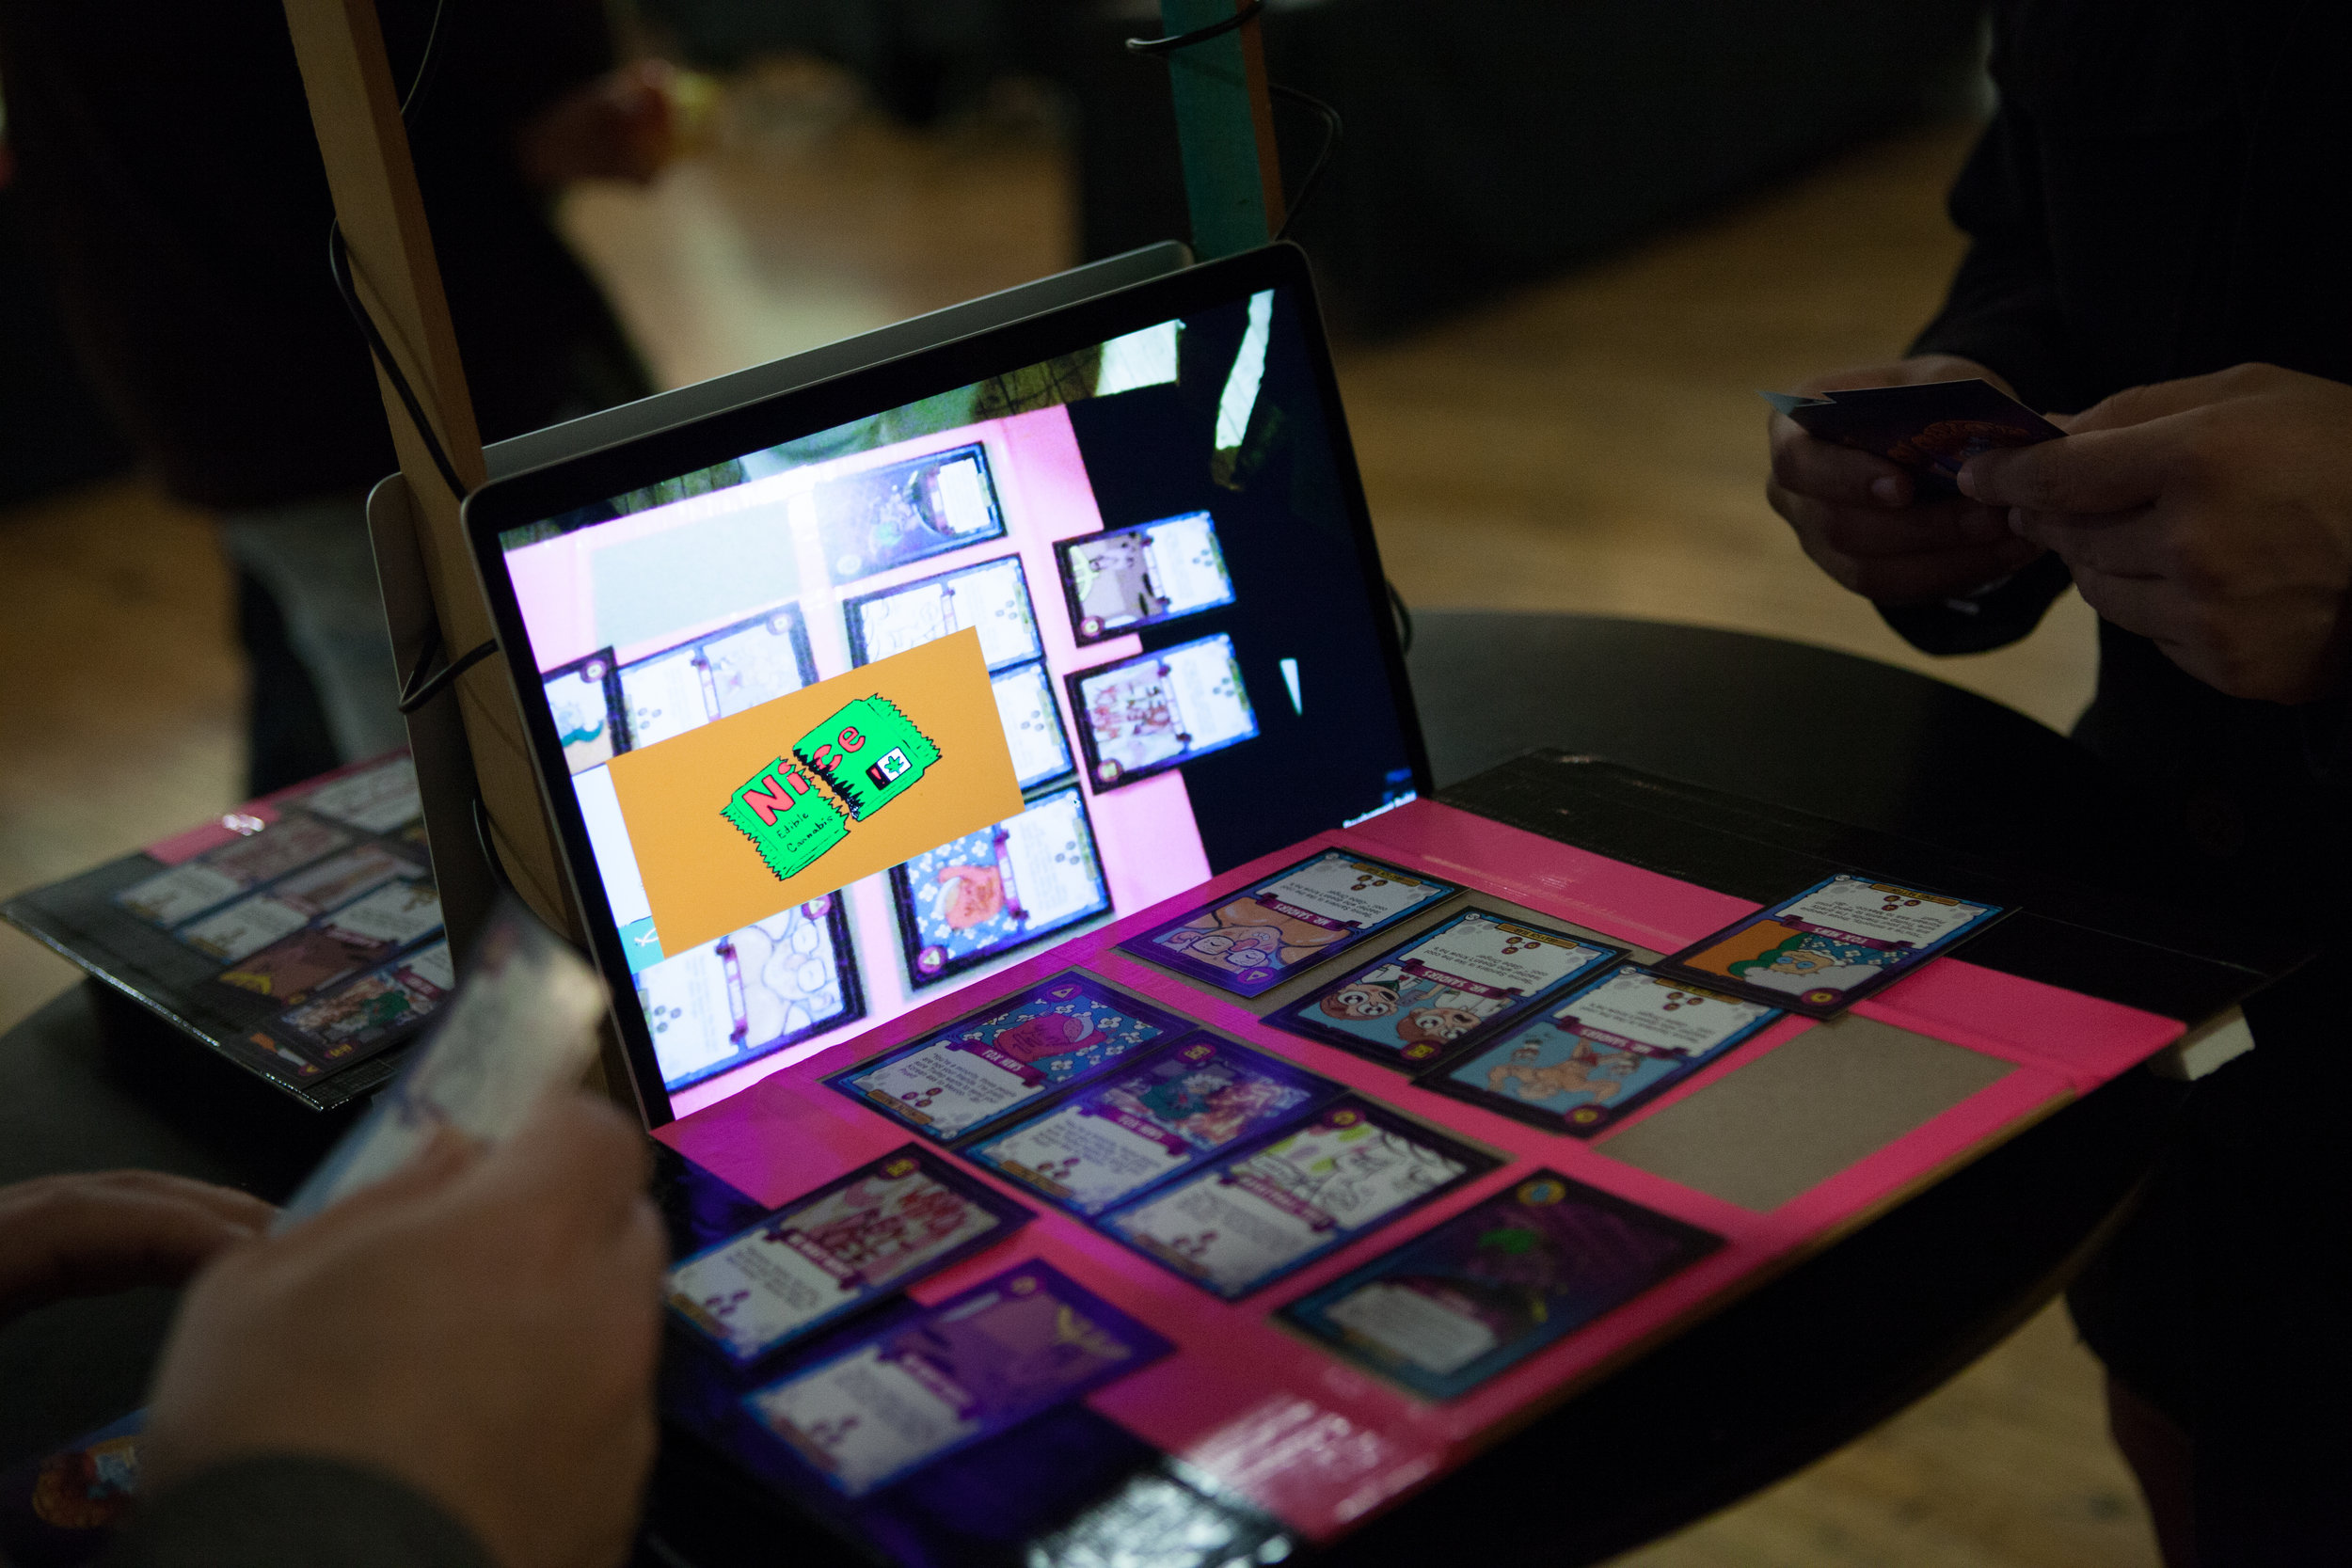 Augmented Reality - Show Show brings artists and technologists together to create augmented reality games for brands.Players draw cards and place them on camera-monitored platforms. Whenever three cards of a kind are placed in a row, a new video is unlocked and viewed by the players. These games can be downloaded on mobile devices and played anywhere.